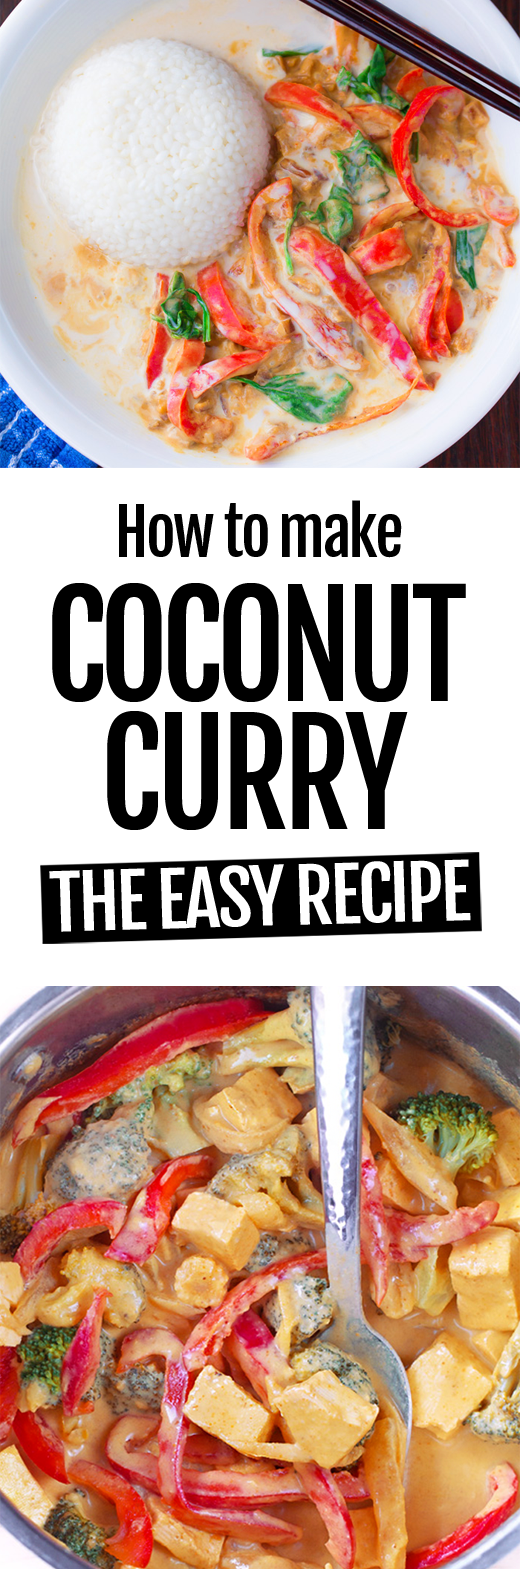 How To Make The Best Easy Coconut Curry Recipe